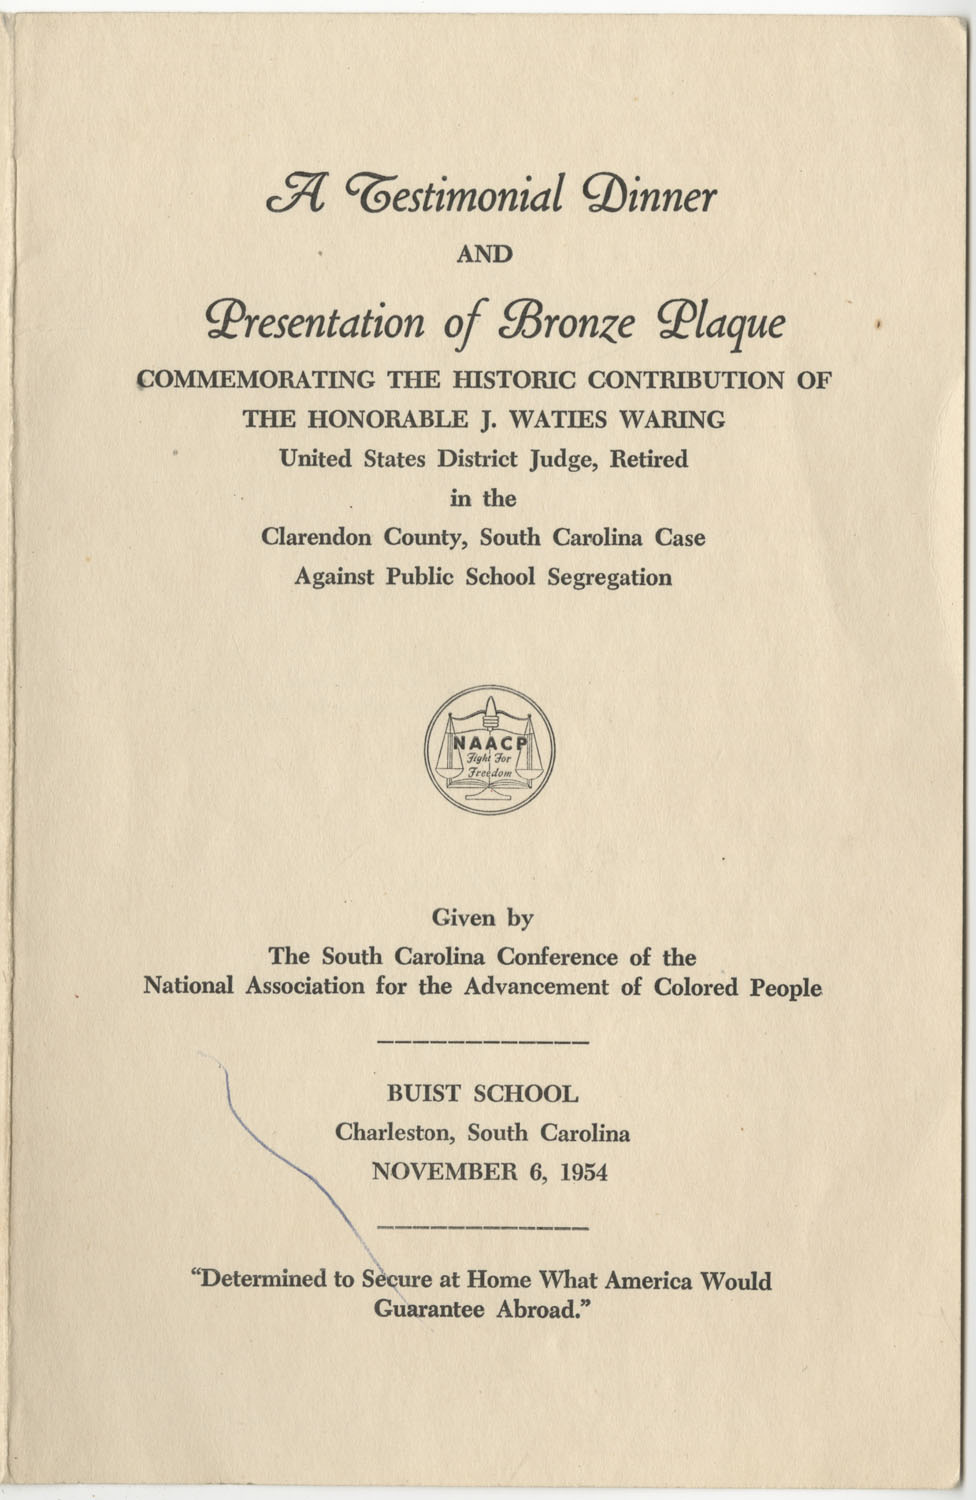 Program to A Testimonial Dinner Commemorating Honorable J. Waties Waring